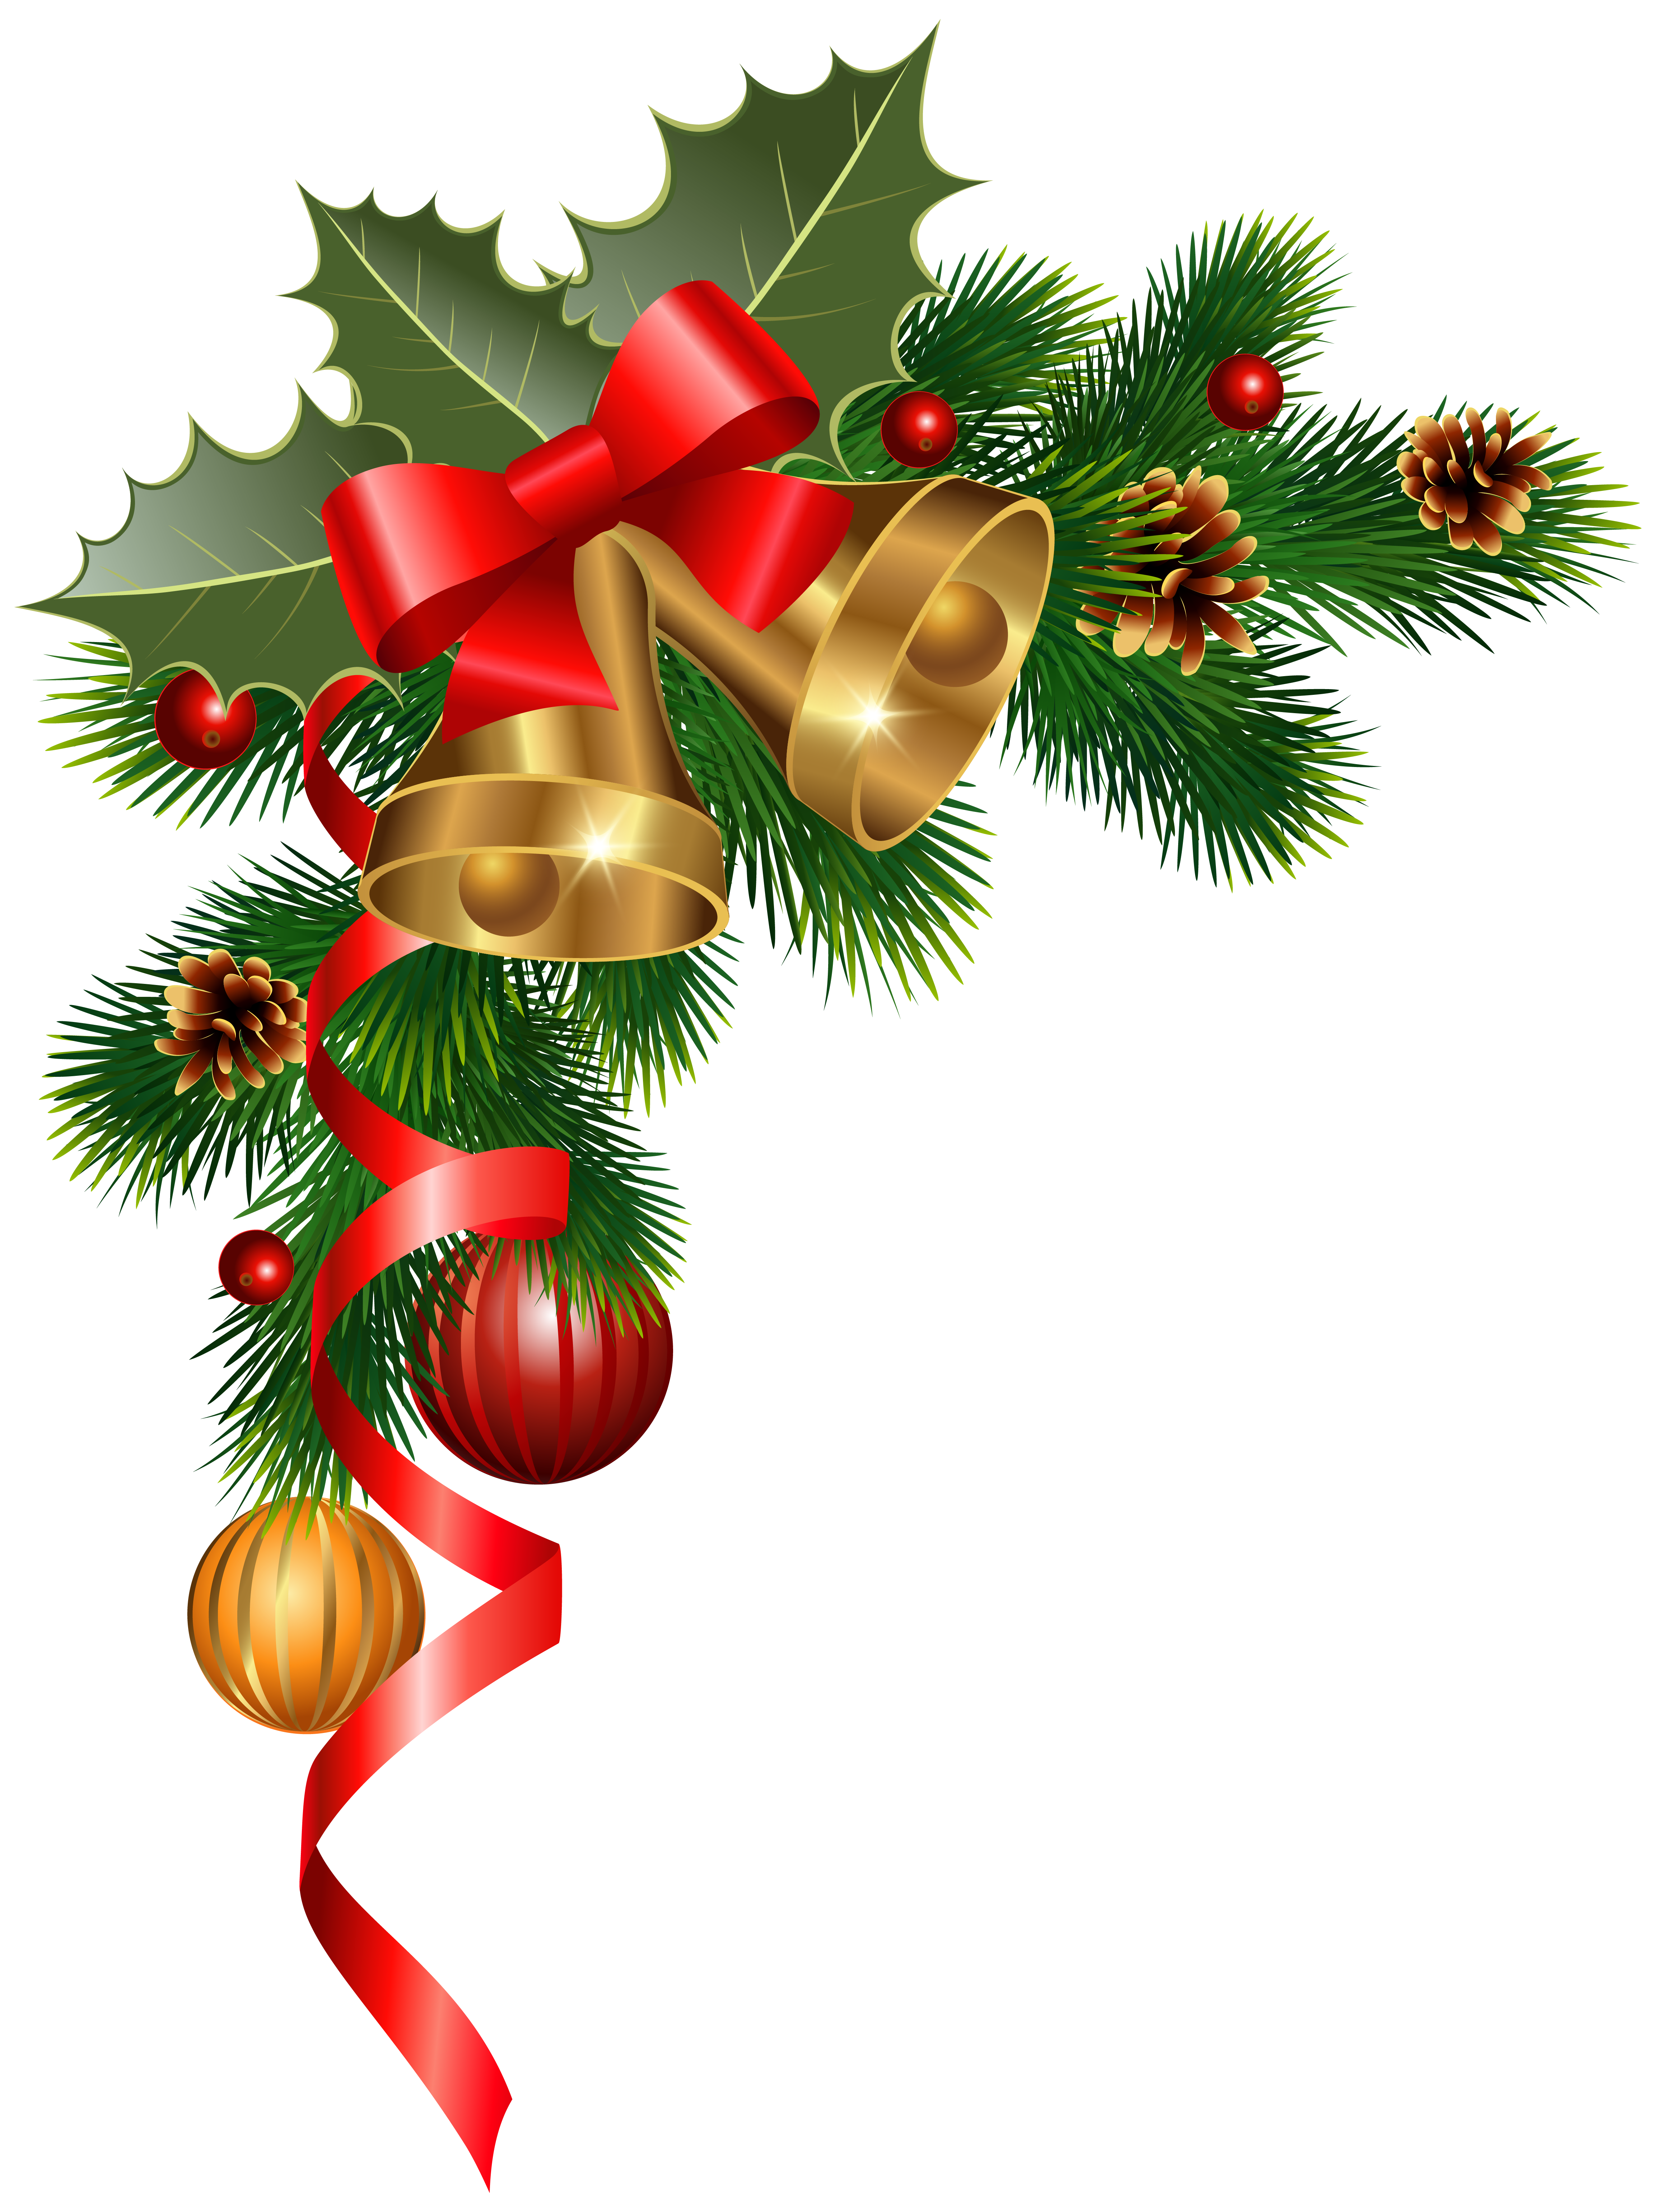 Christmas corner borders images. Holly clipart frame